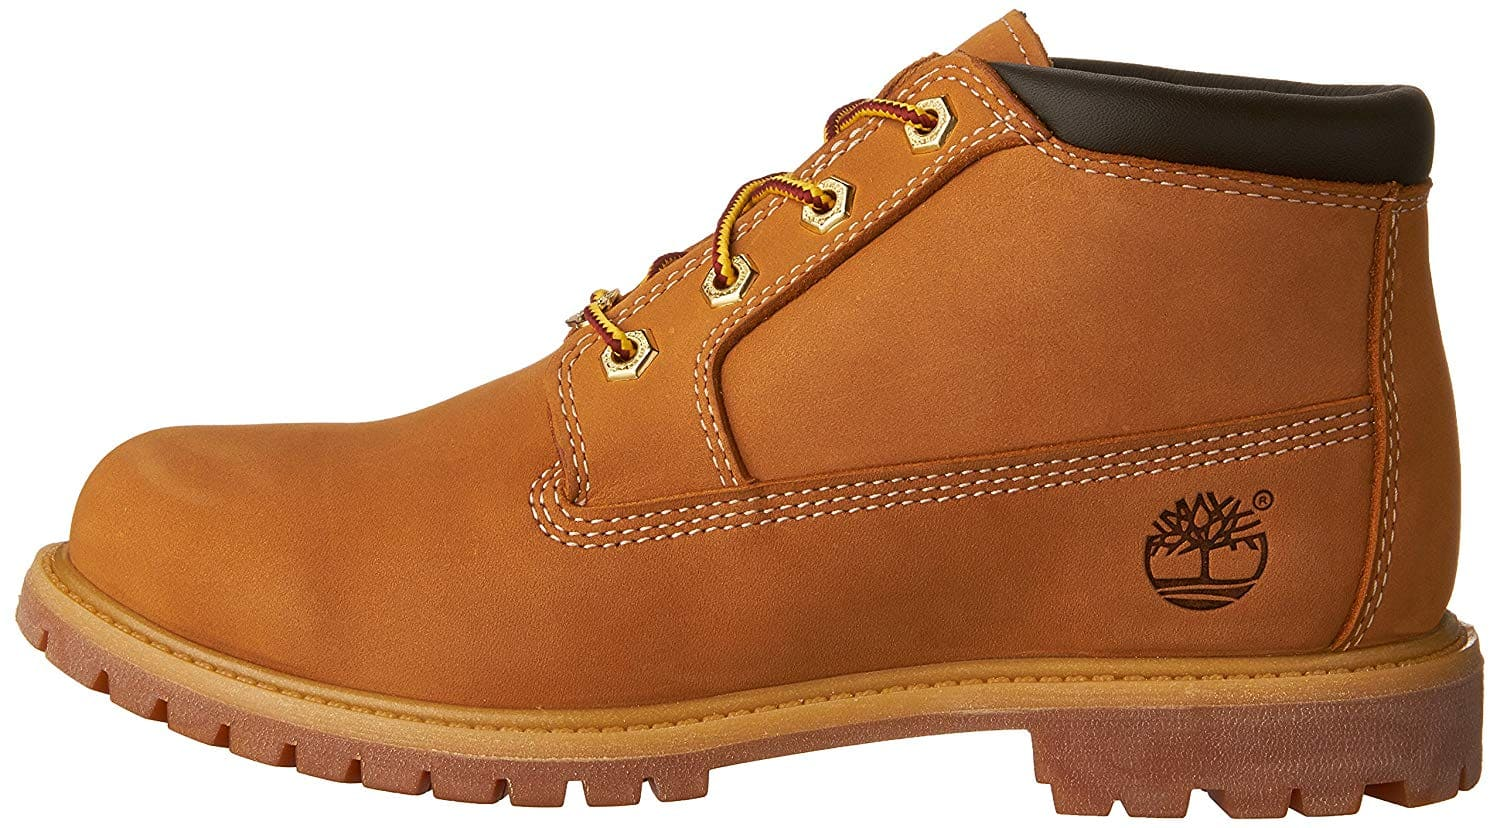 Timberland Women s Nellie Double Waterproof Ankle Boot  69.95   Free  Shipping d9232ab1e9